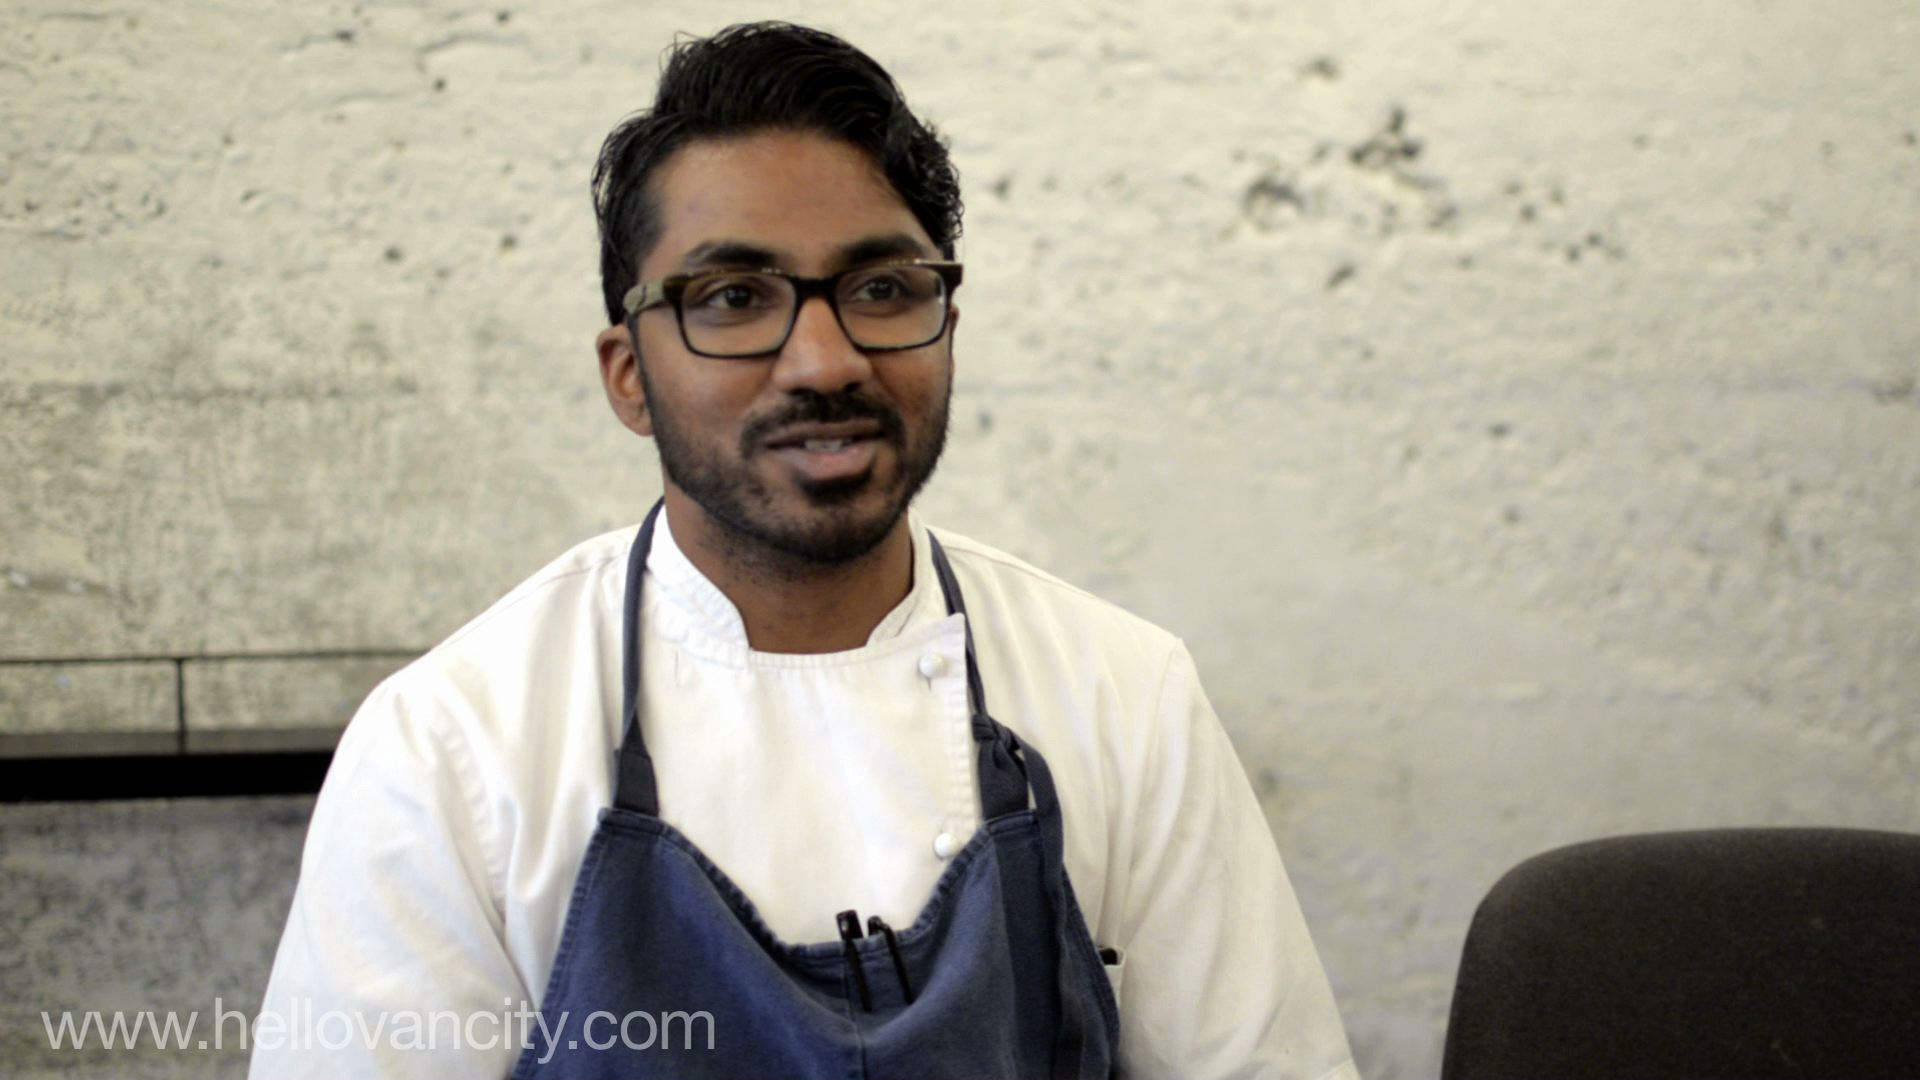 Chef Alvin Pillay - Research & Development Chef of the Donnelly Group